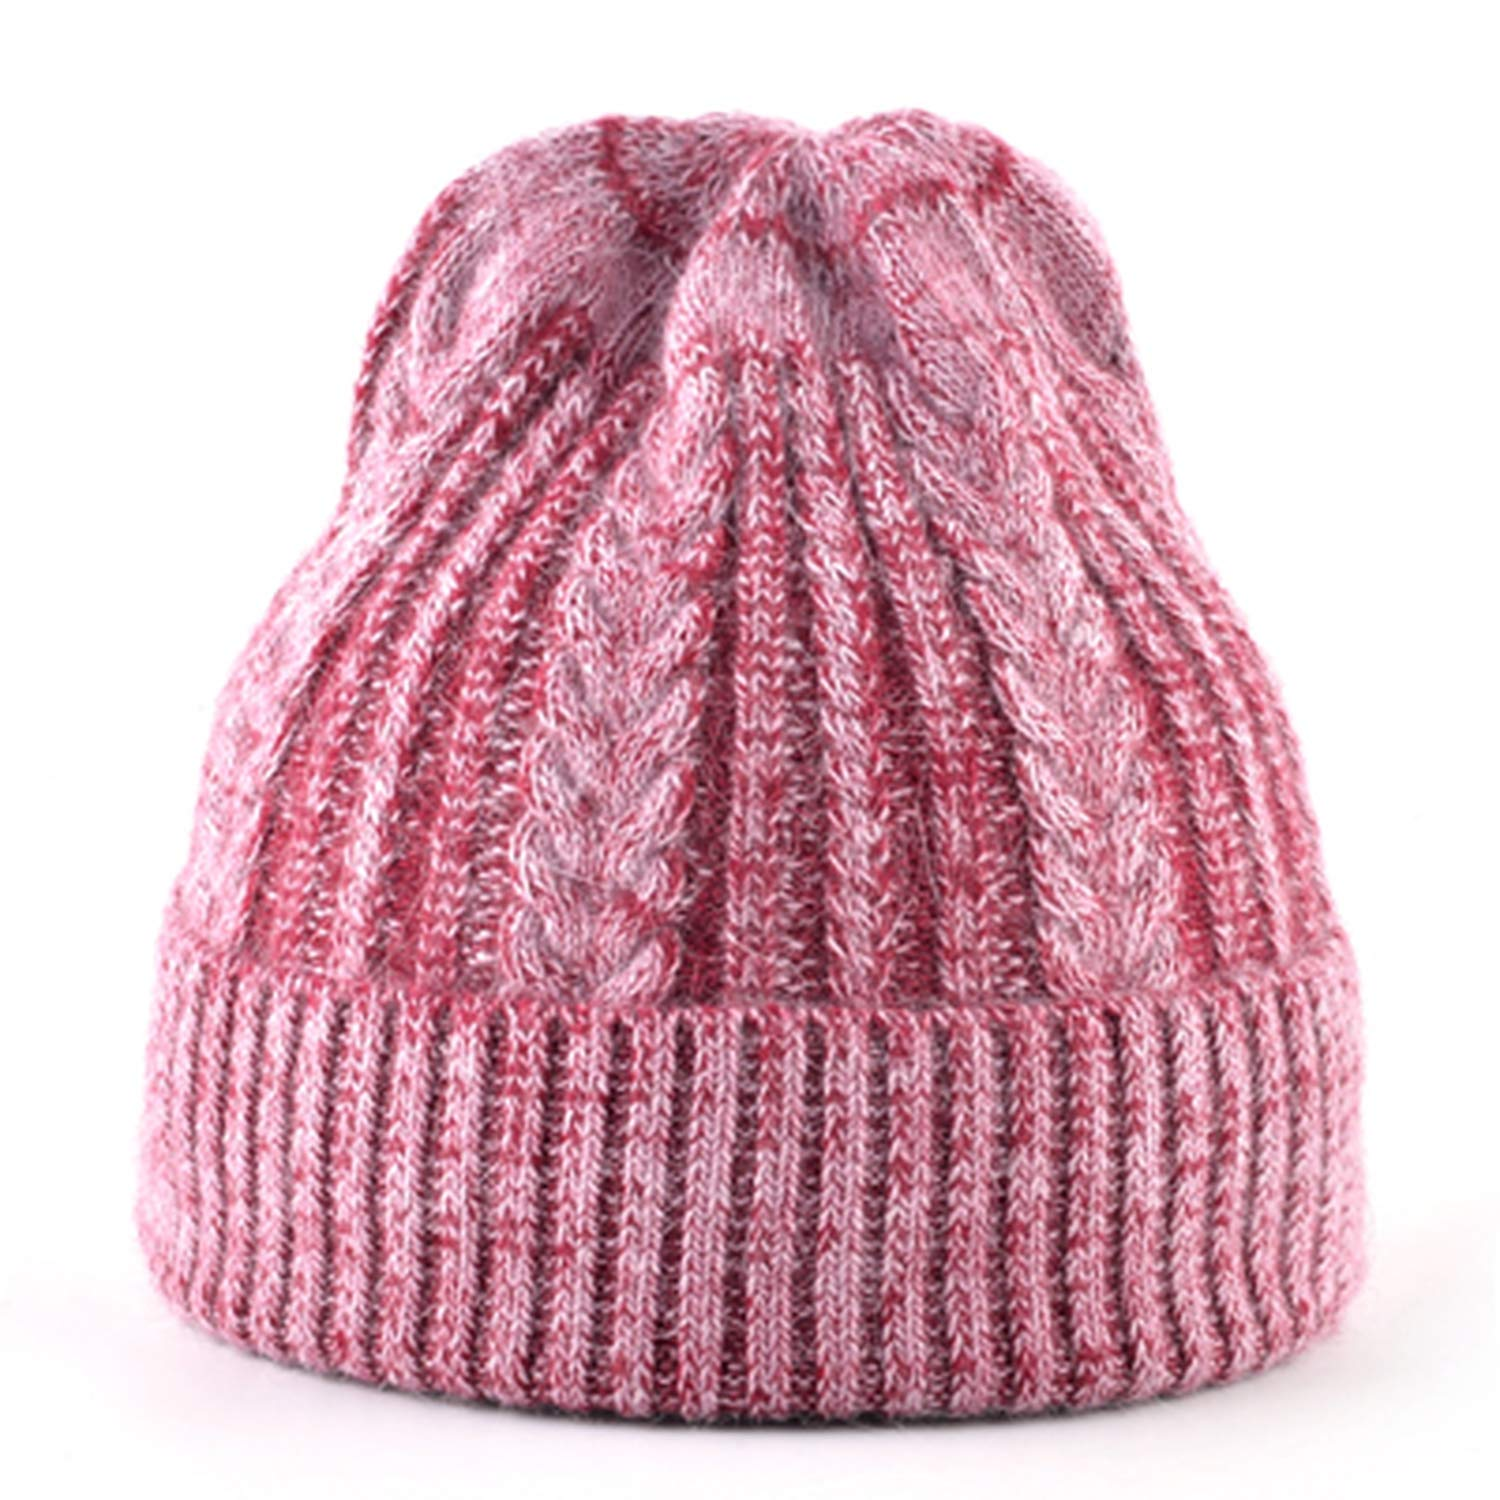 XINBONG Autumn Winter Women Knitted Hats Ladies Mixed Color Knit Twist Pattern Female Warm Caps Girls Bonnet